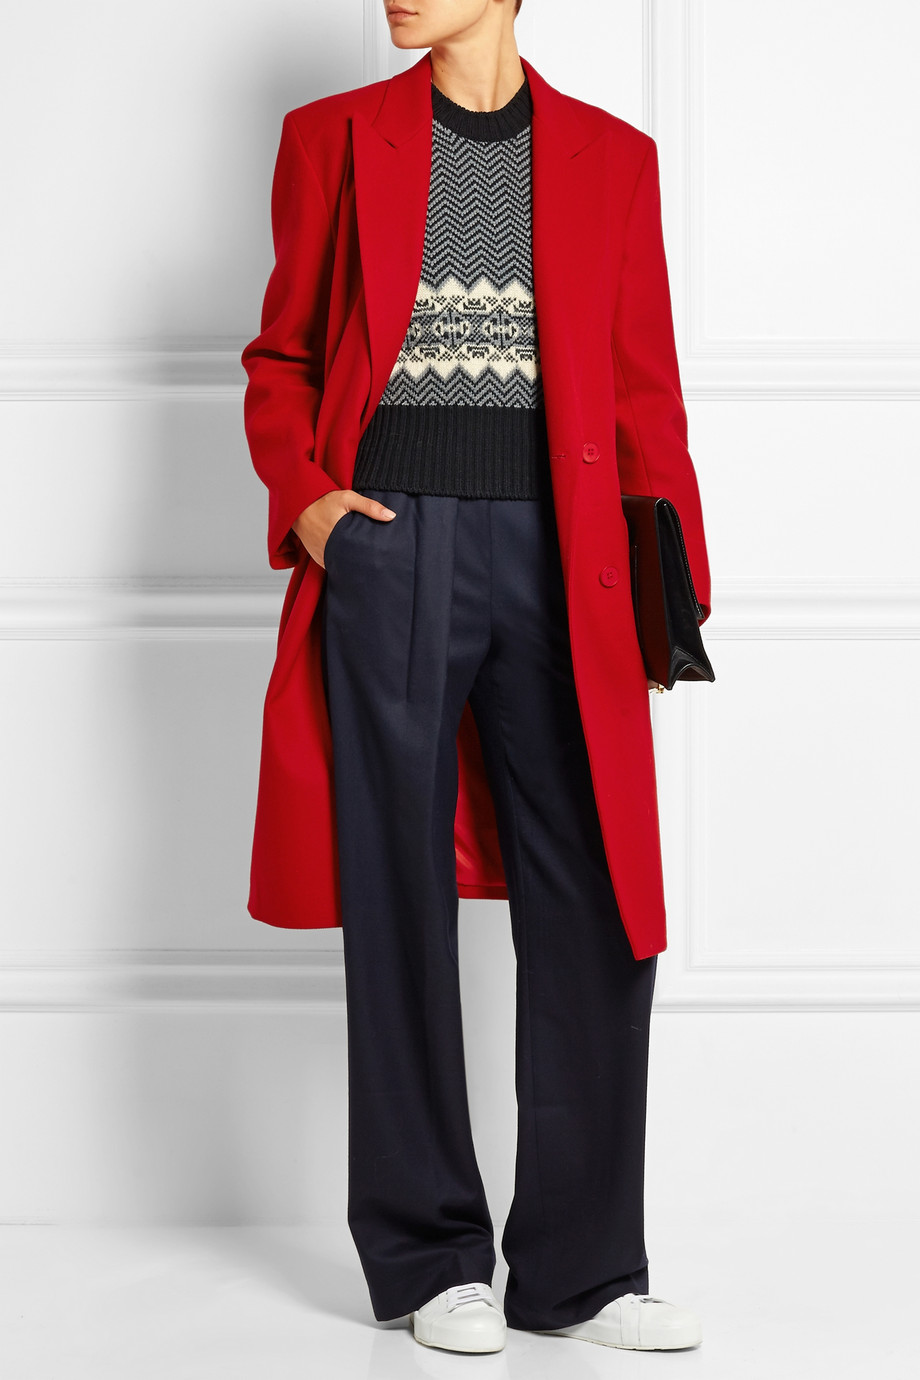 Compare Prices on Red Belted Coat- Online Shopping/Buy Low Price ...